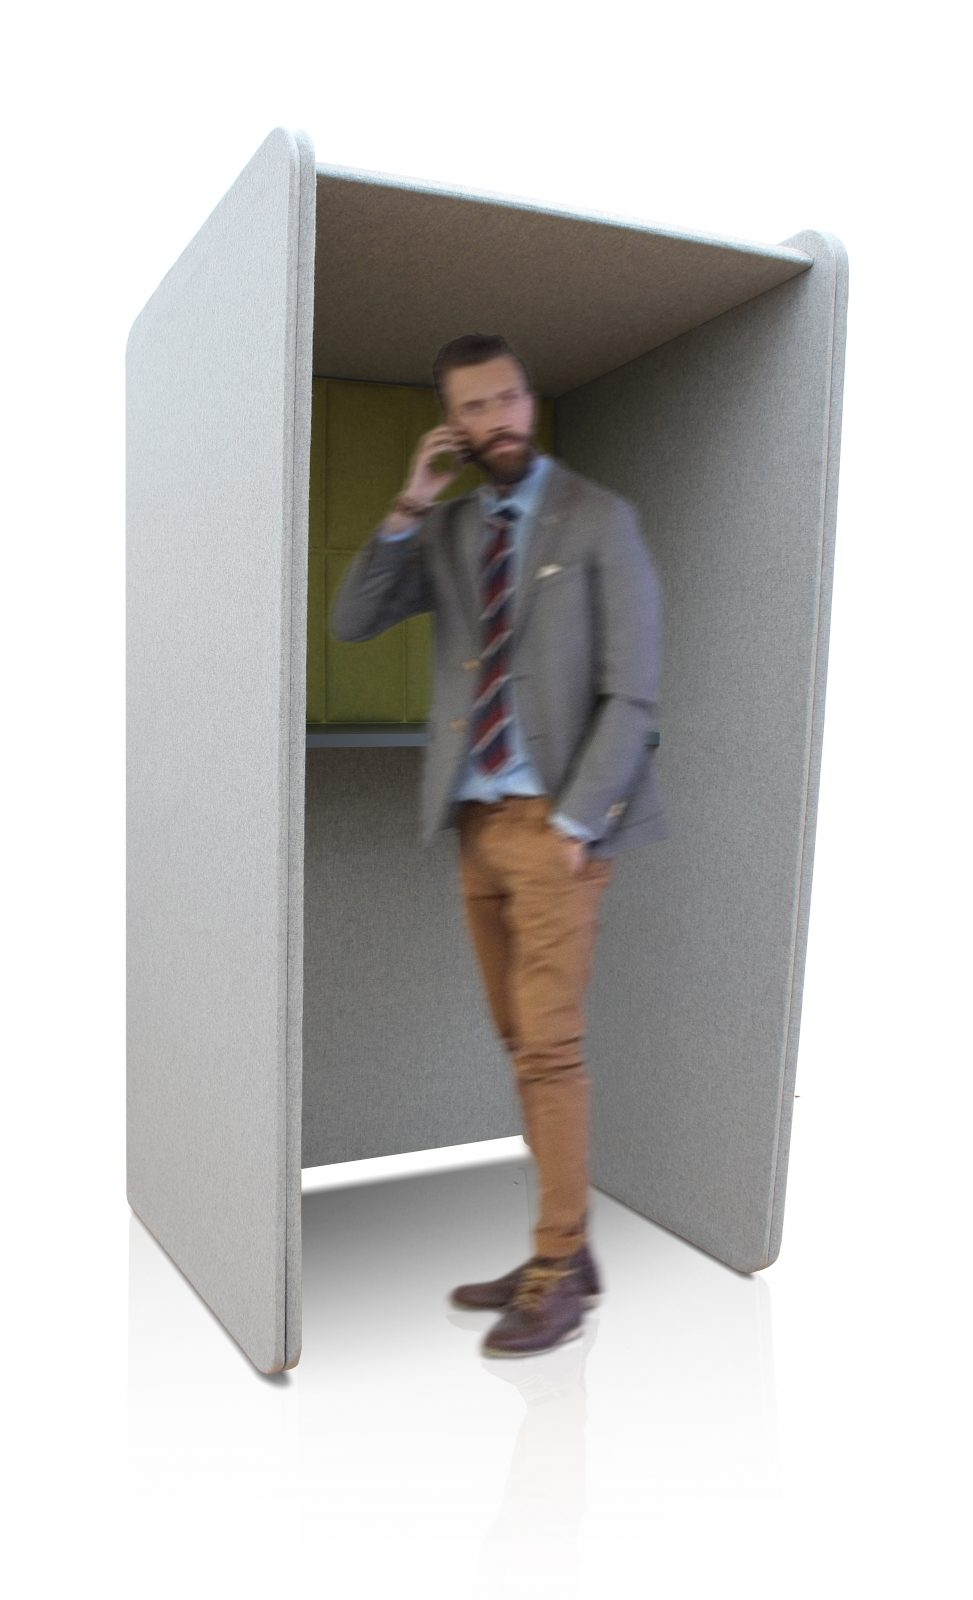 Soundproof Phone Booth